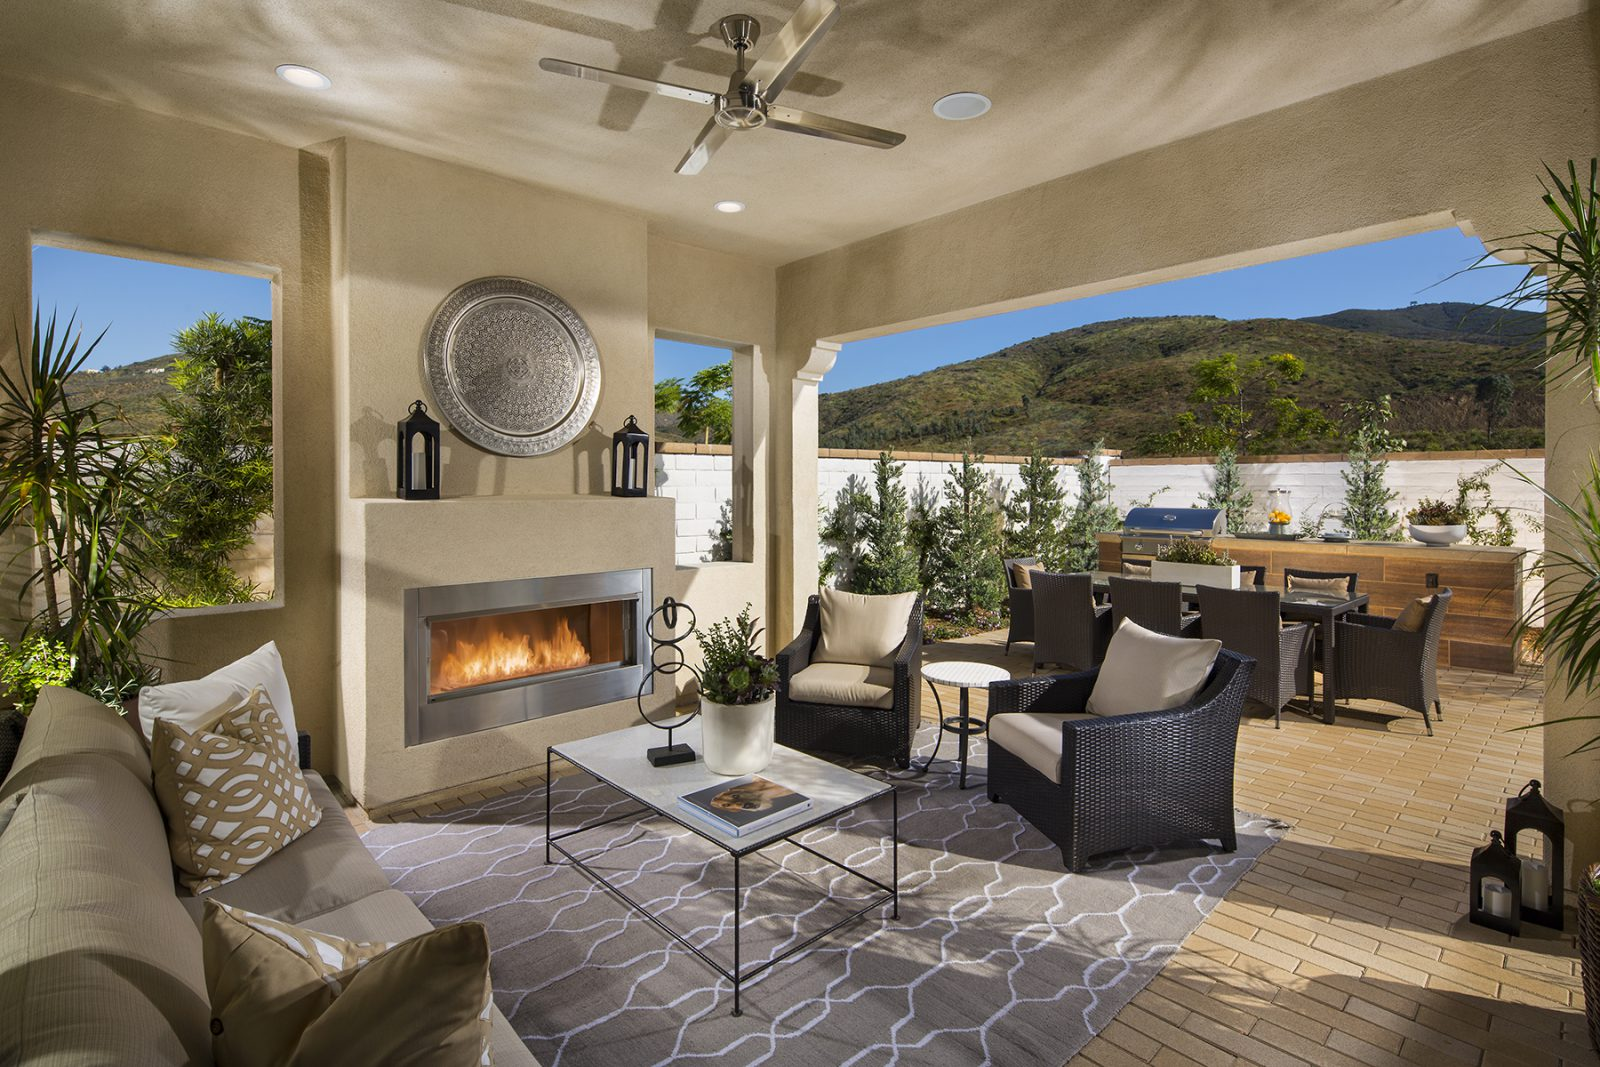 Covered Outdoor Room in San Diego New Homes for Sale